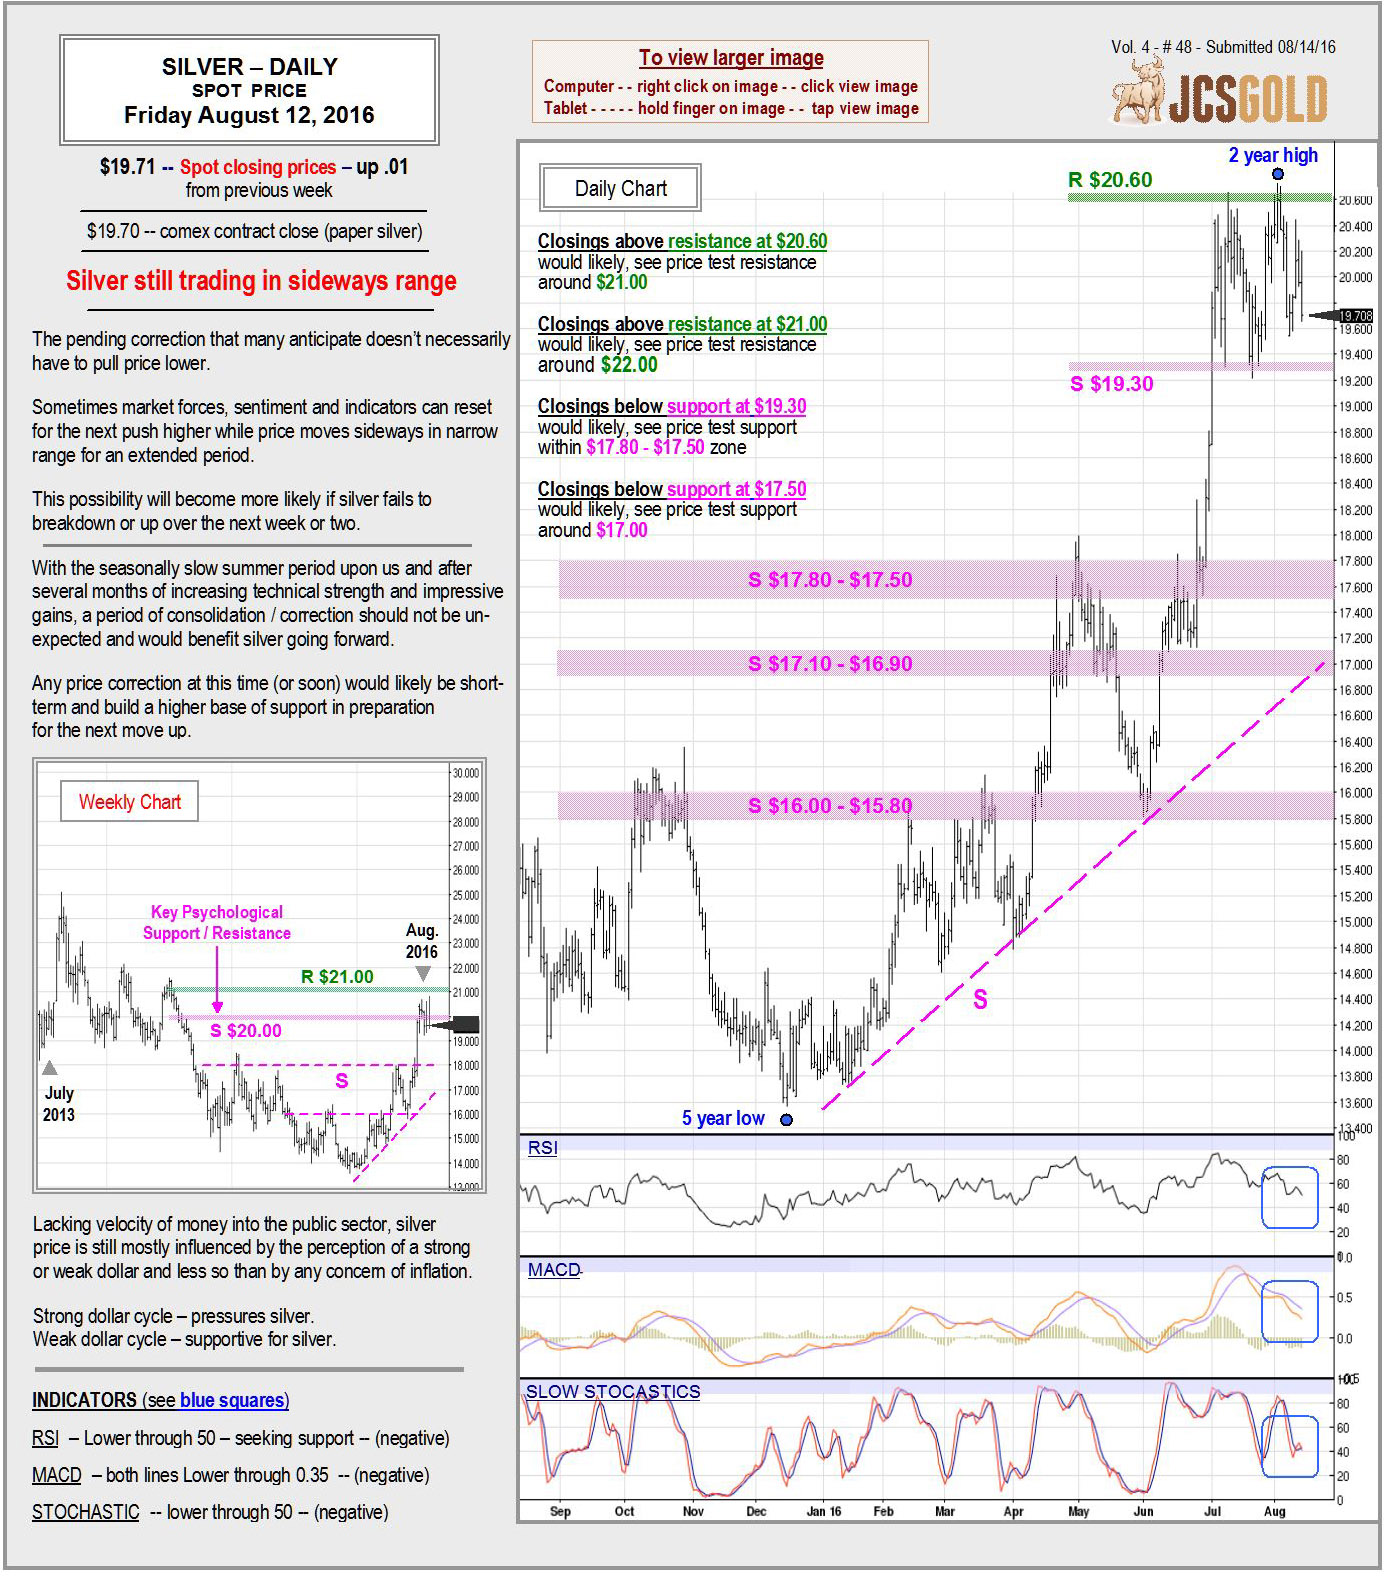 August 12, 2016 chart & commentary